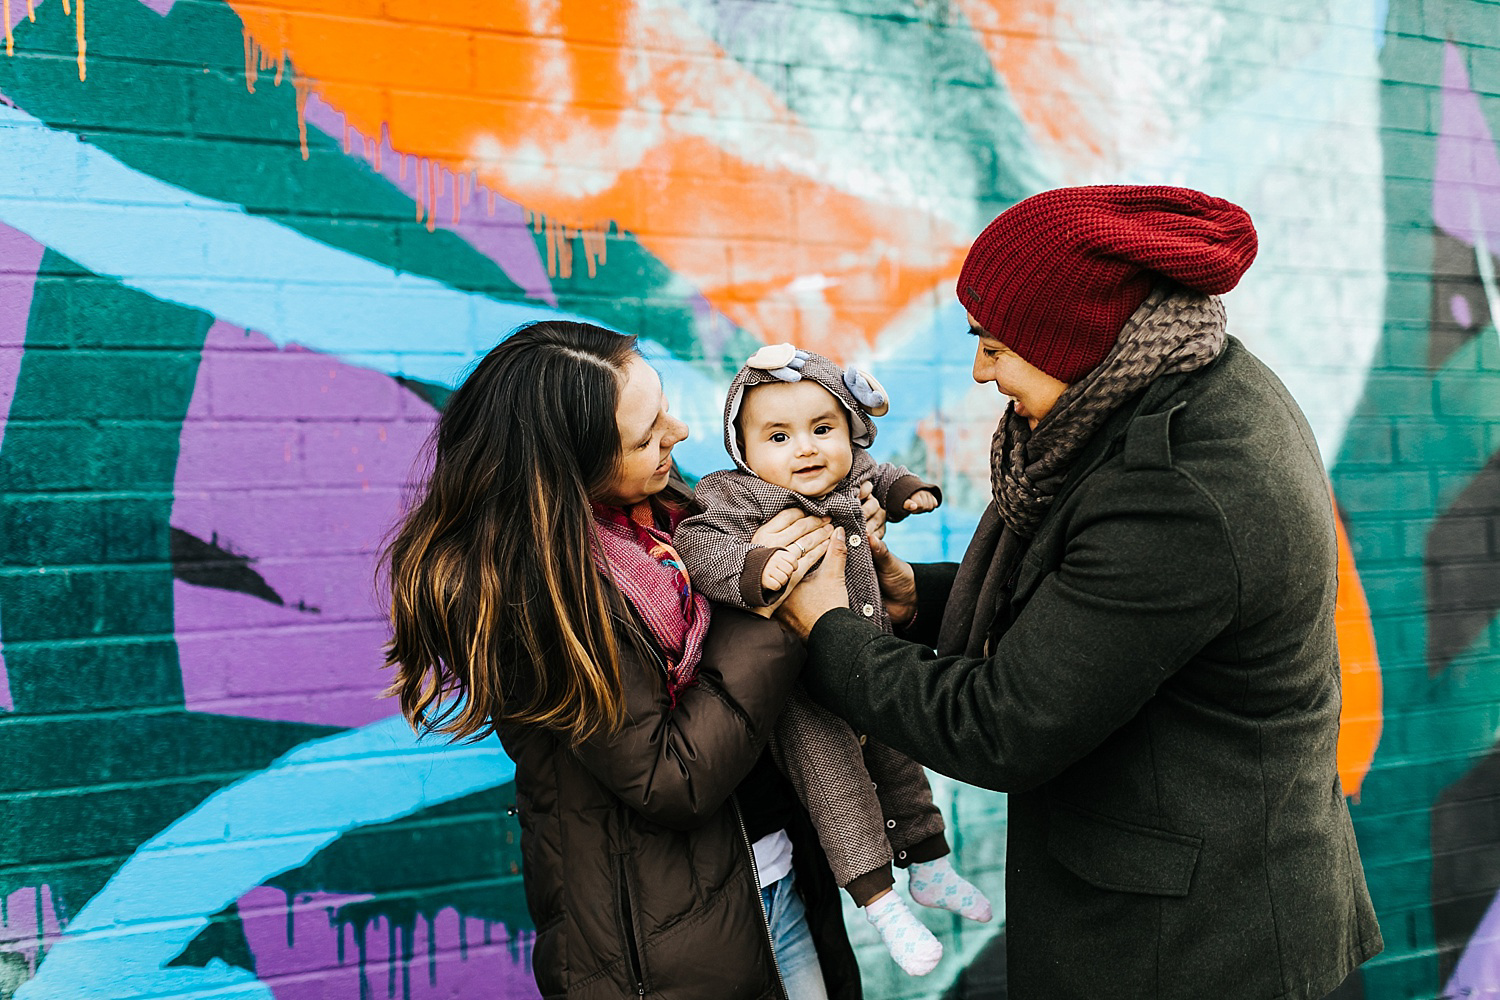 Family photo shoot at Williamsburg, brooklyn